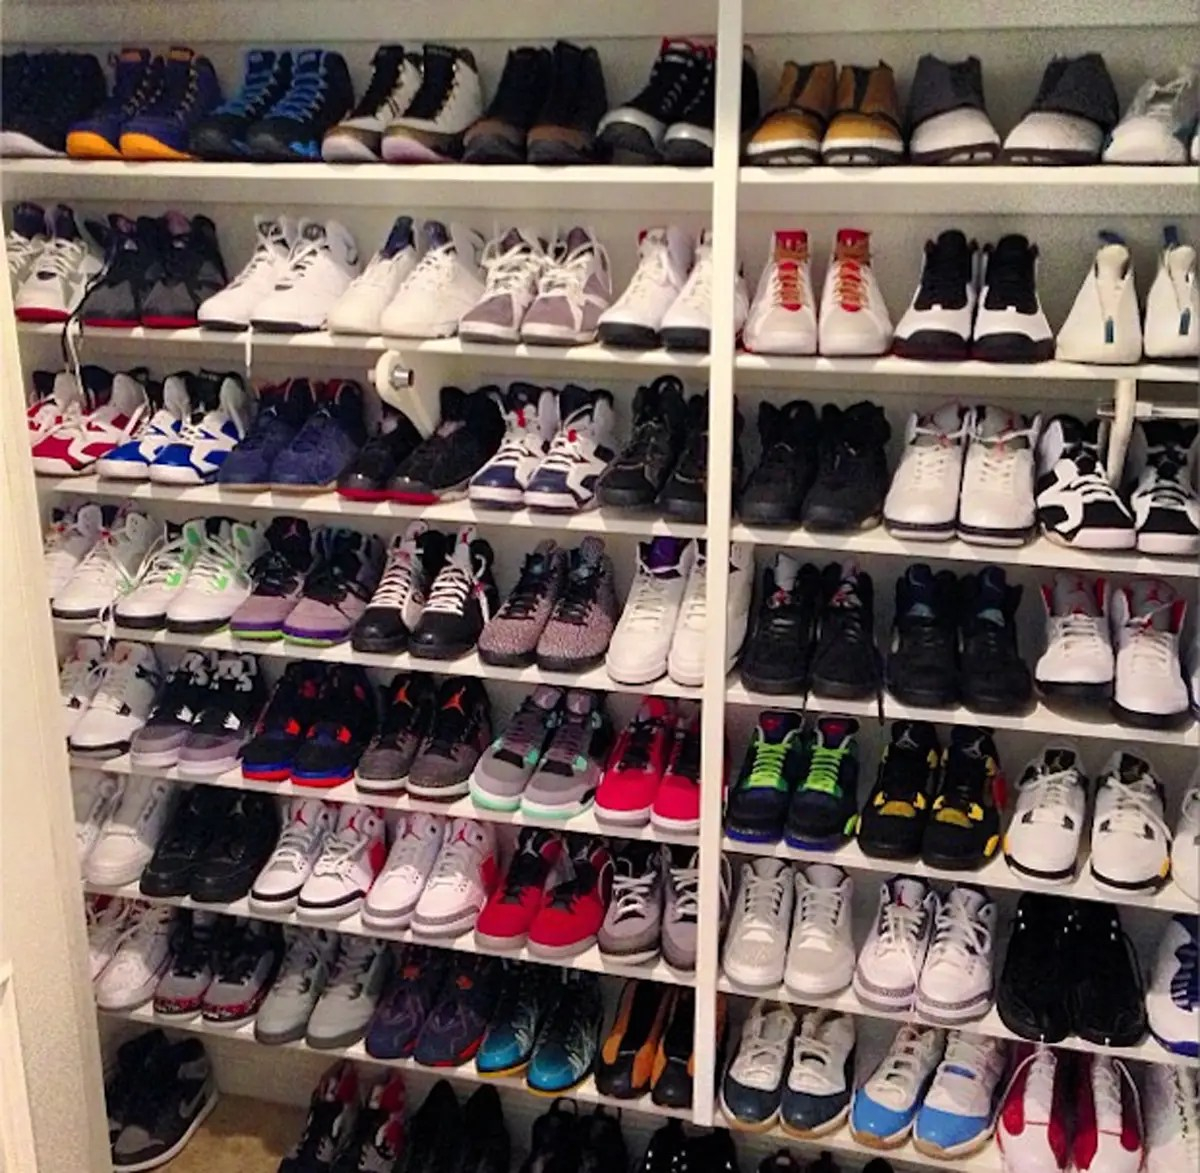 He takes great pride in his personal shoe collection of over 2,000 pairs of shoes in his closet.